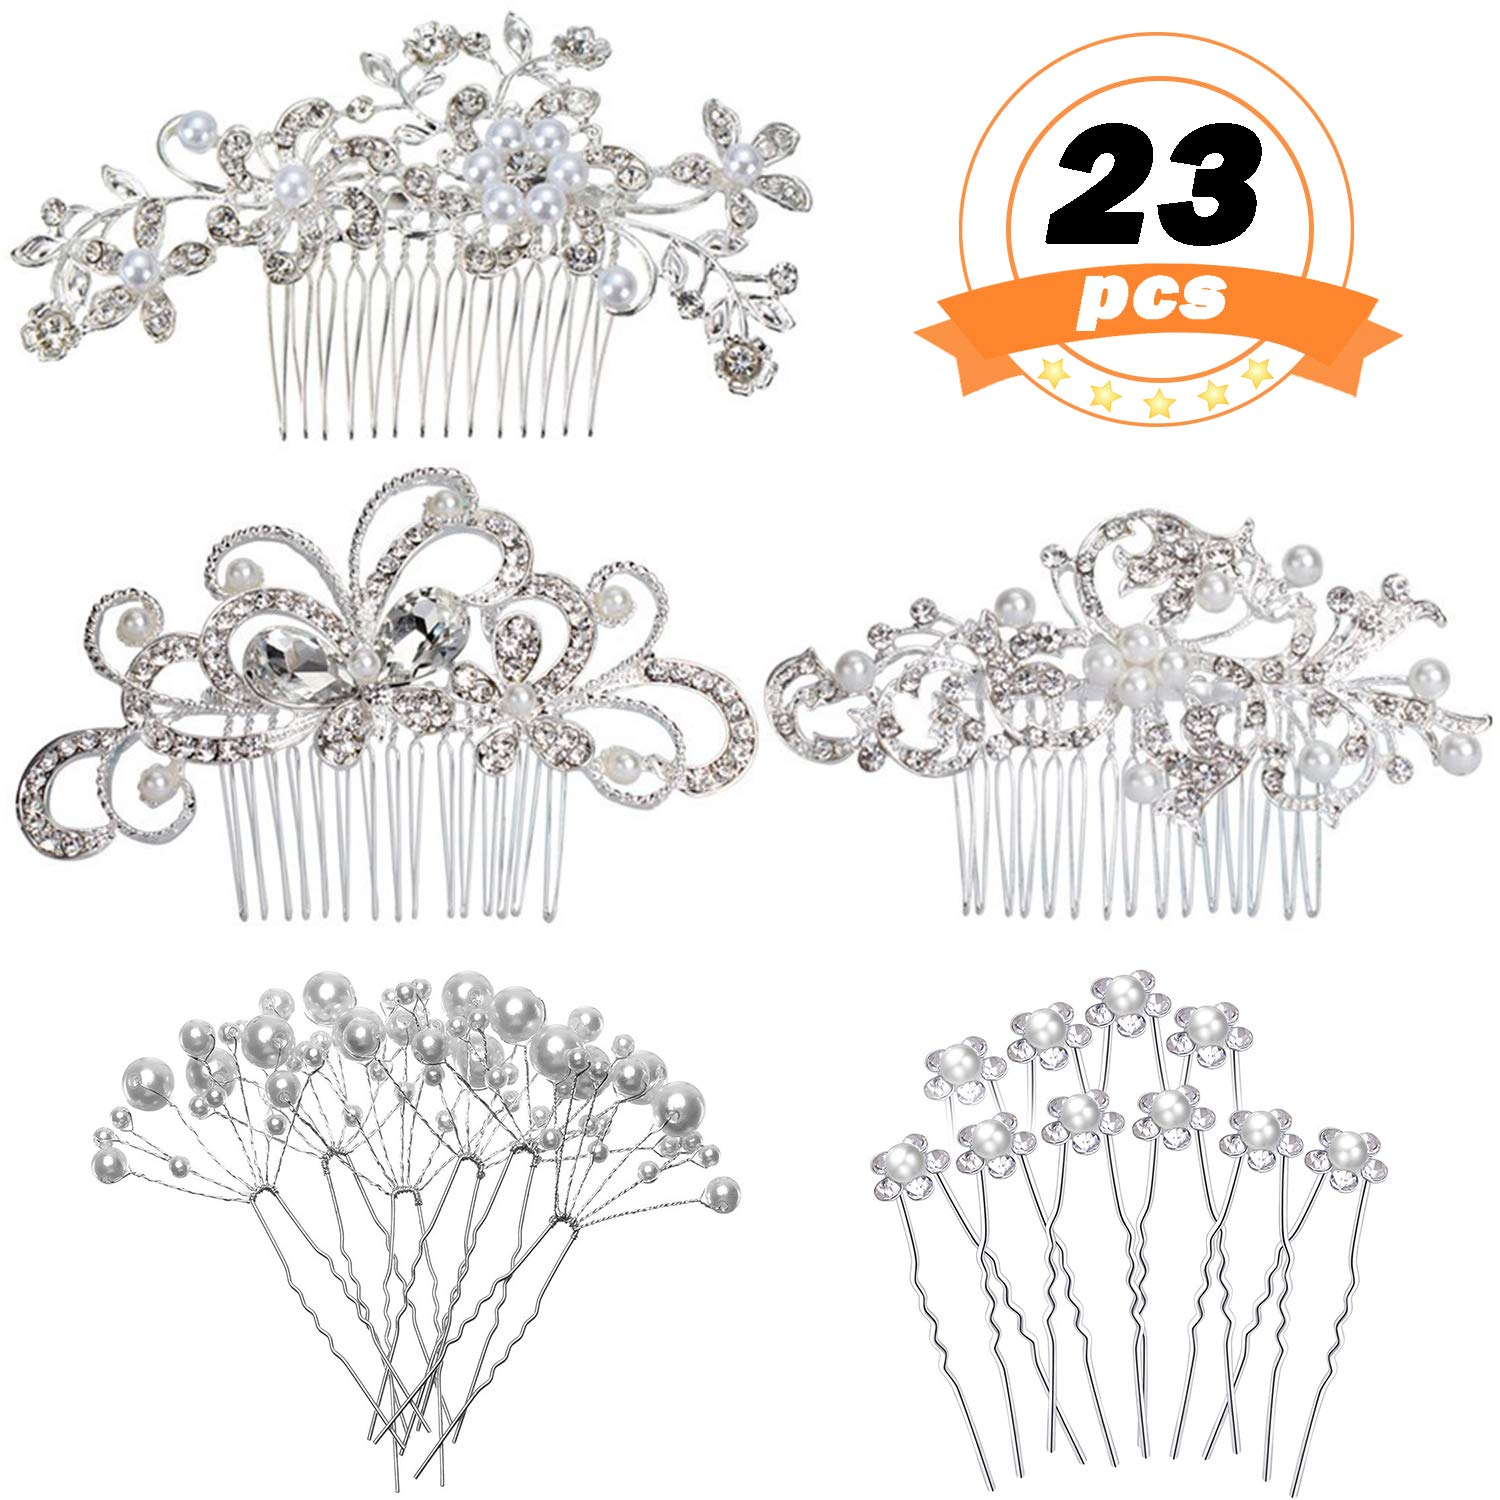 REVEW Set of 23pcs Bridal Hair Comb Wedding Hair Side Combs Bridal Head Pin Headpiece Crystal Pearls Flower Bride Bridesmaid